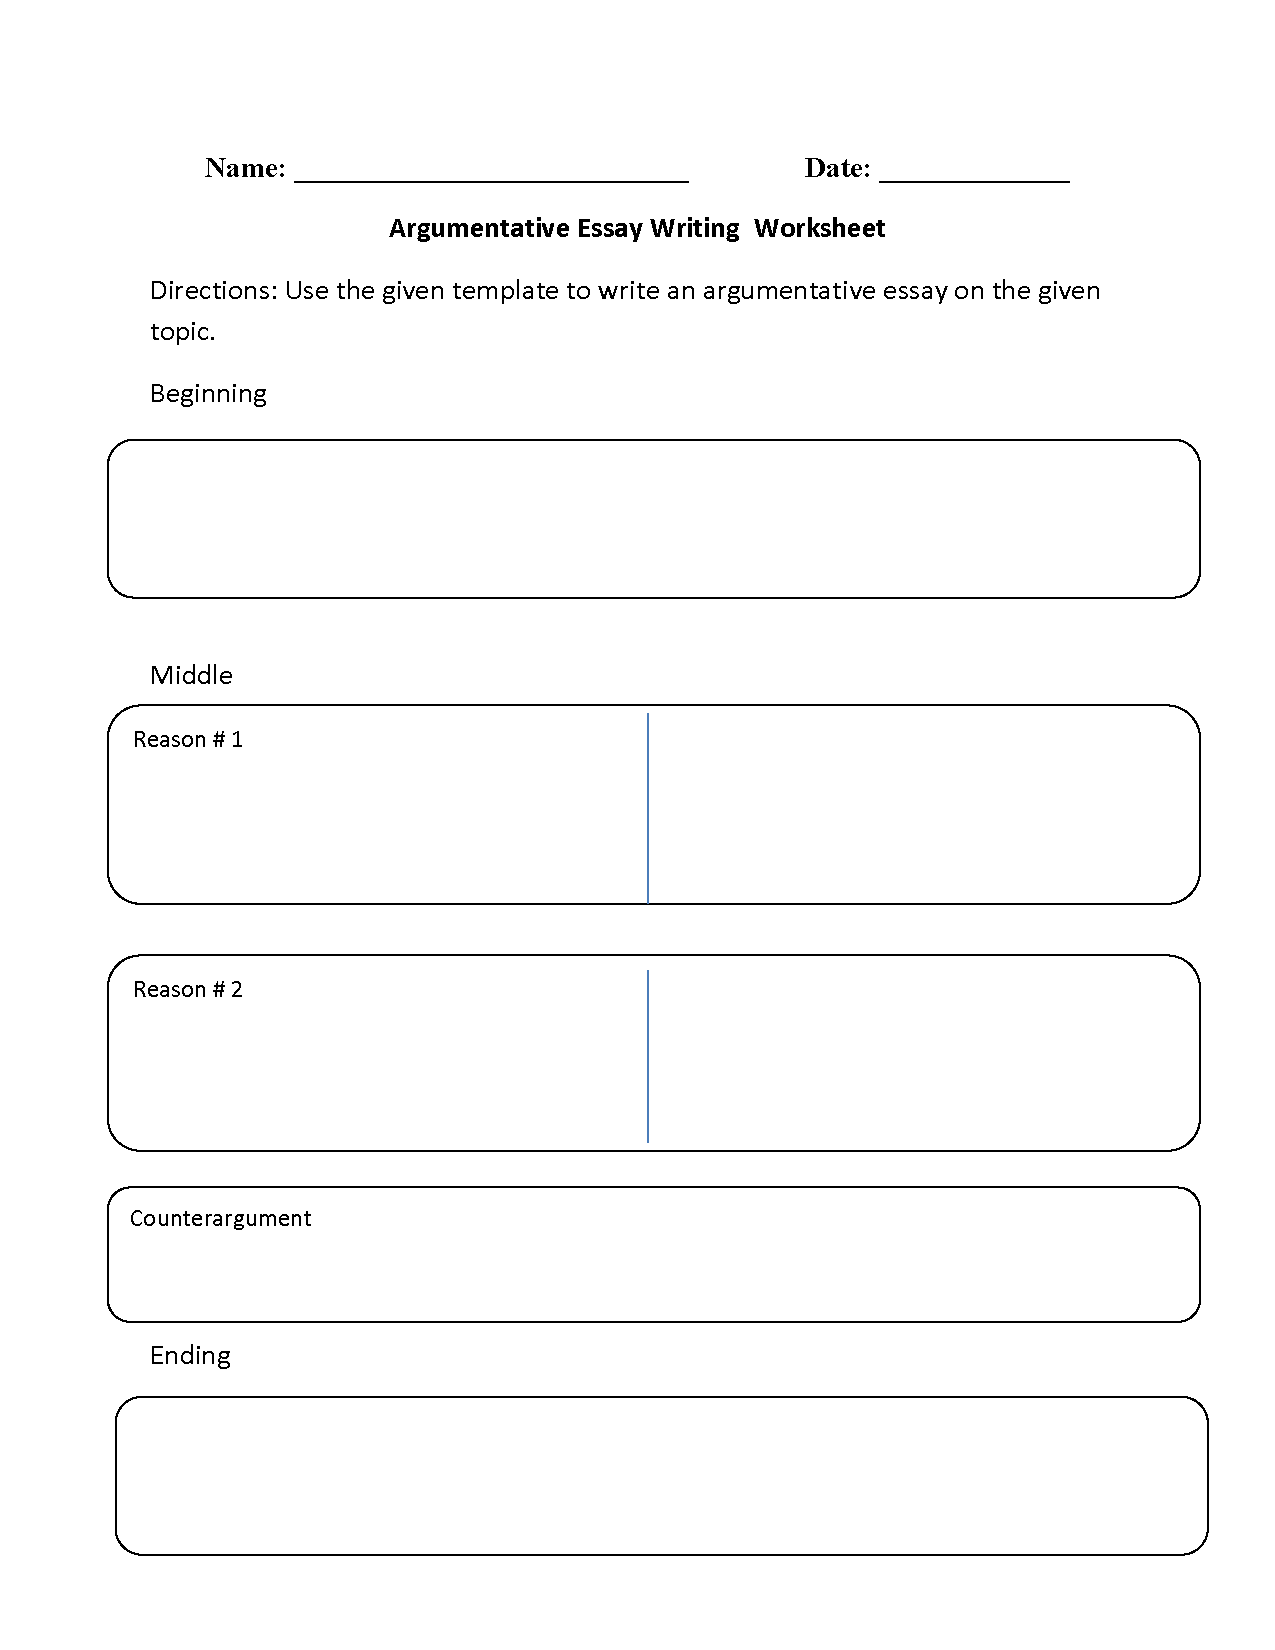 english essay writing practice High quality printable writing practice worksheets for use in school or at home we hope you find them useful.